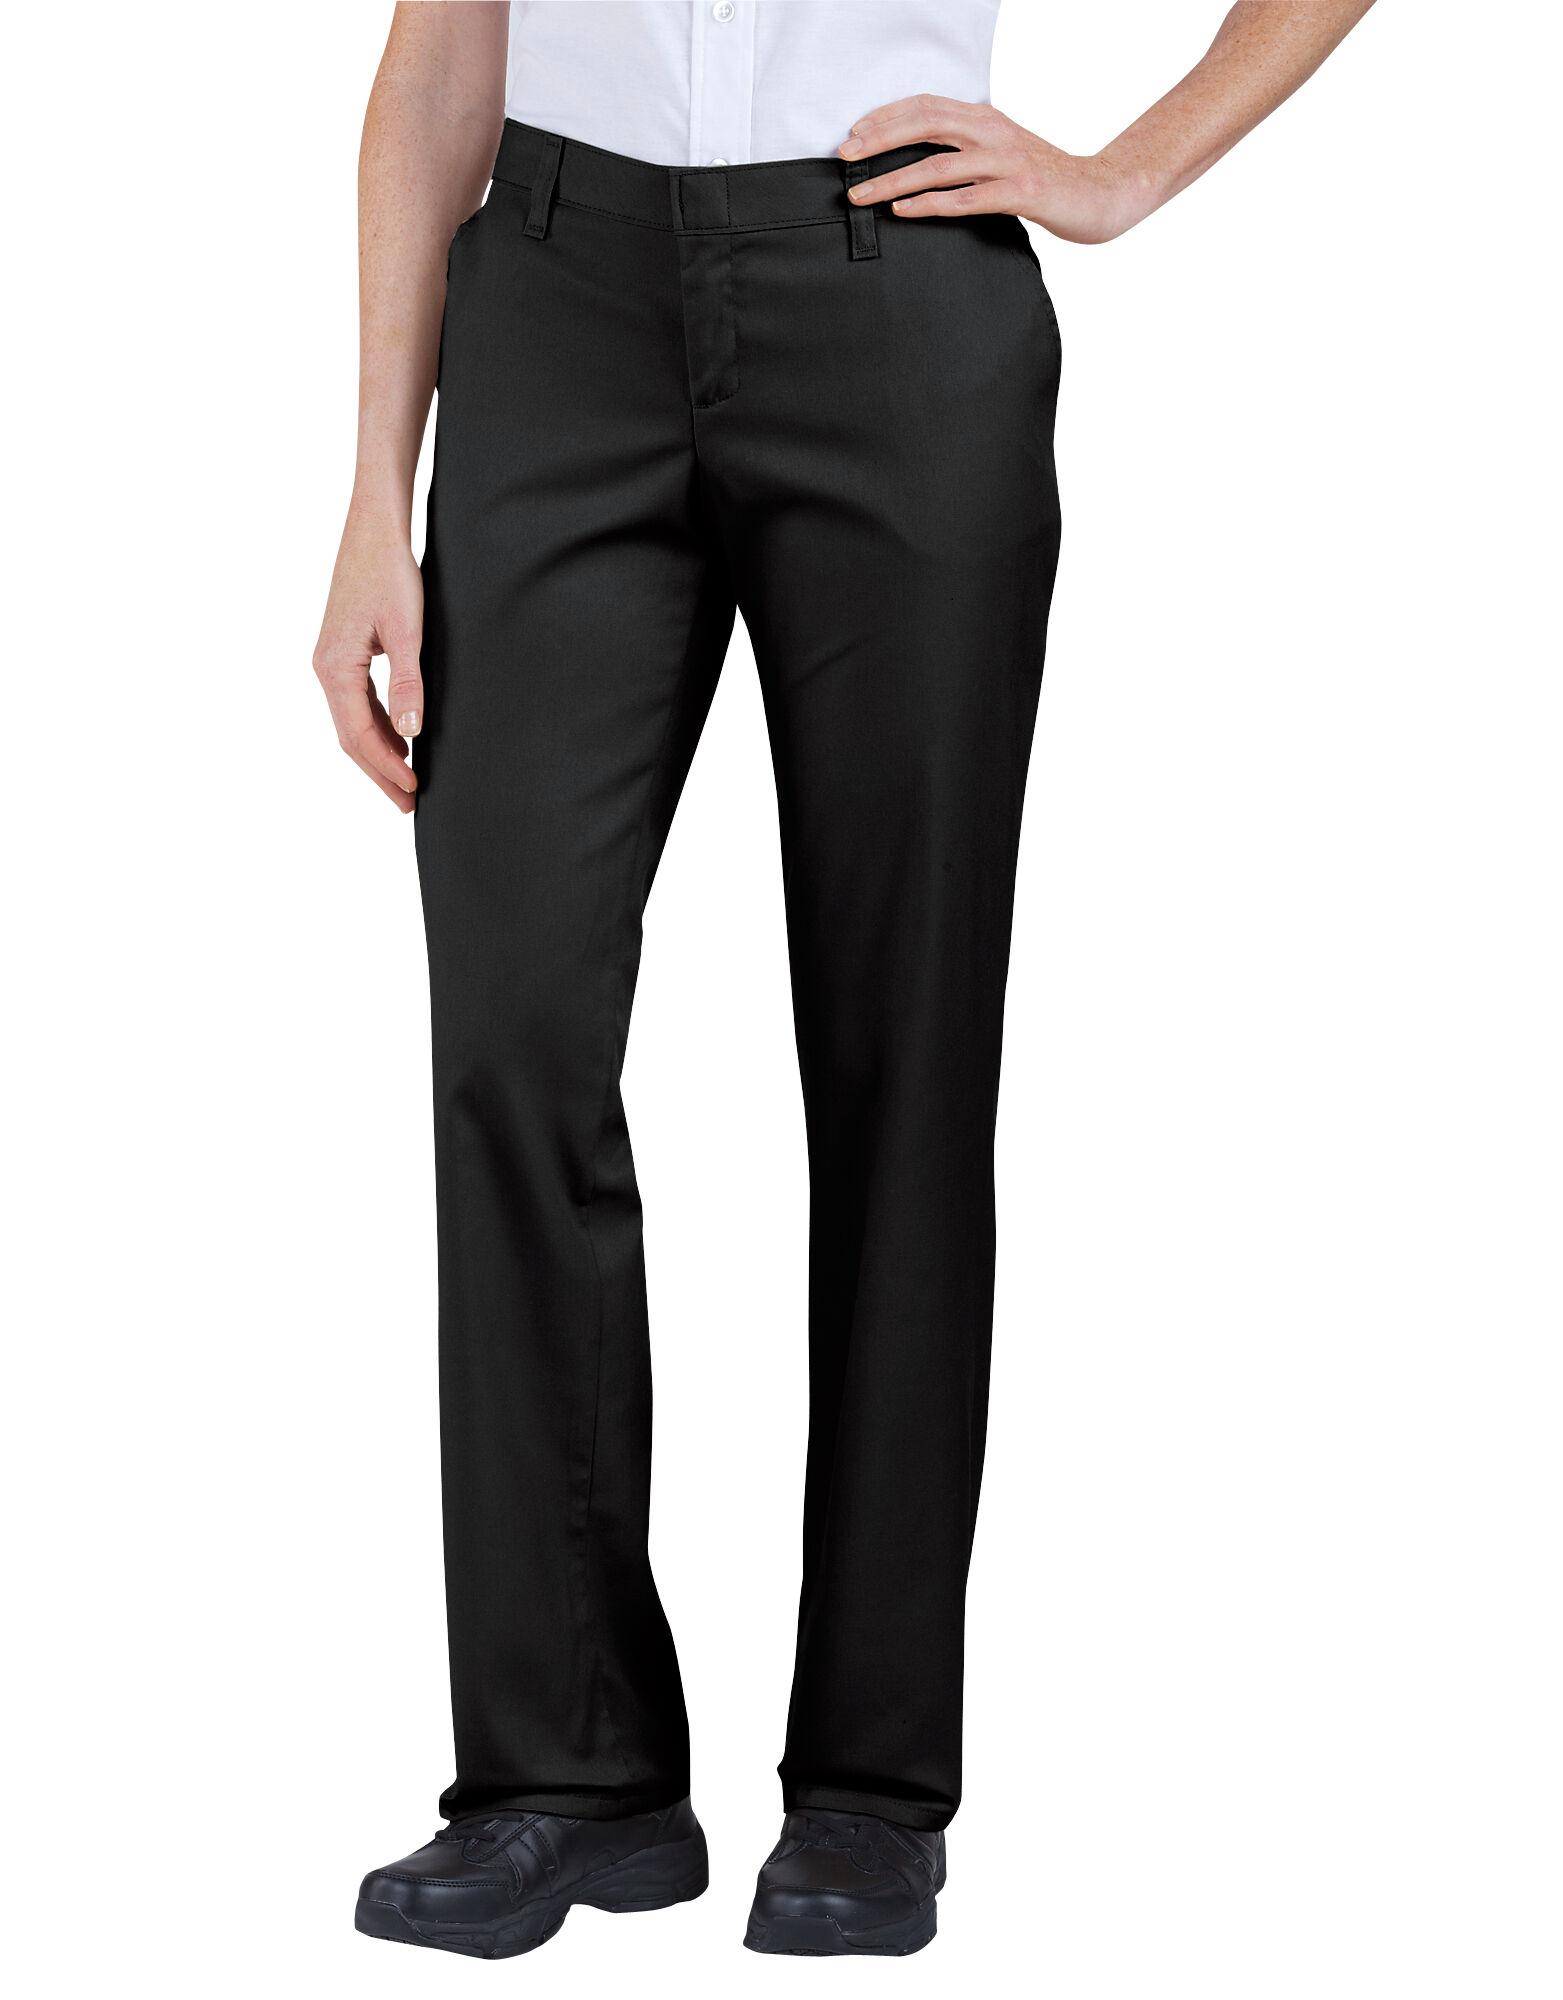 Black Women Work Pants 8u2hUsZz